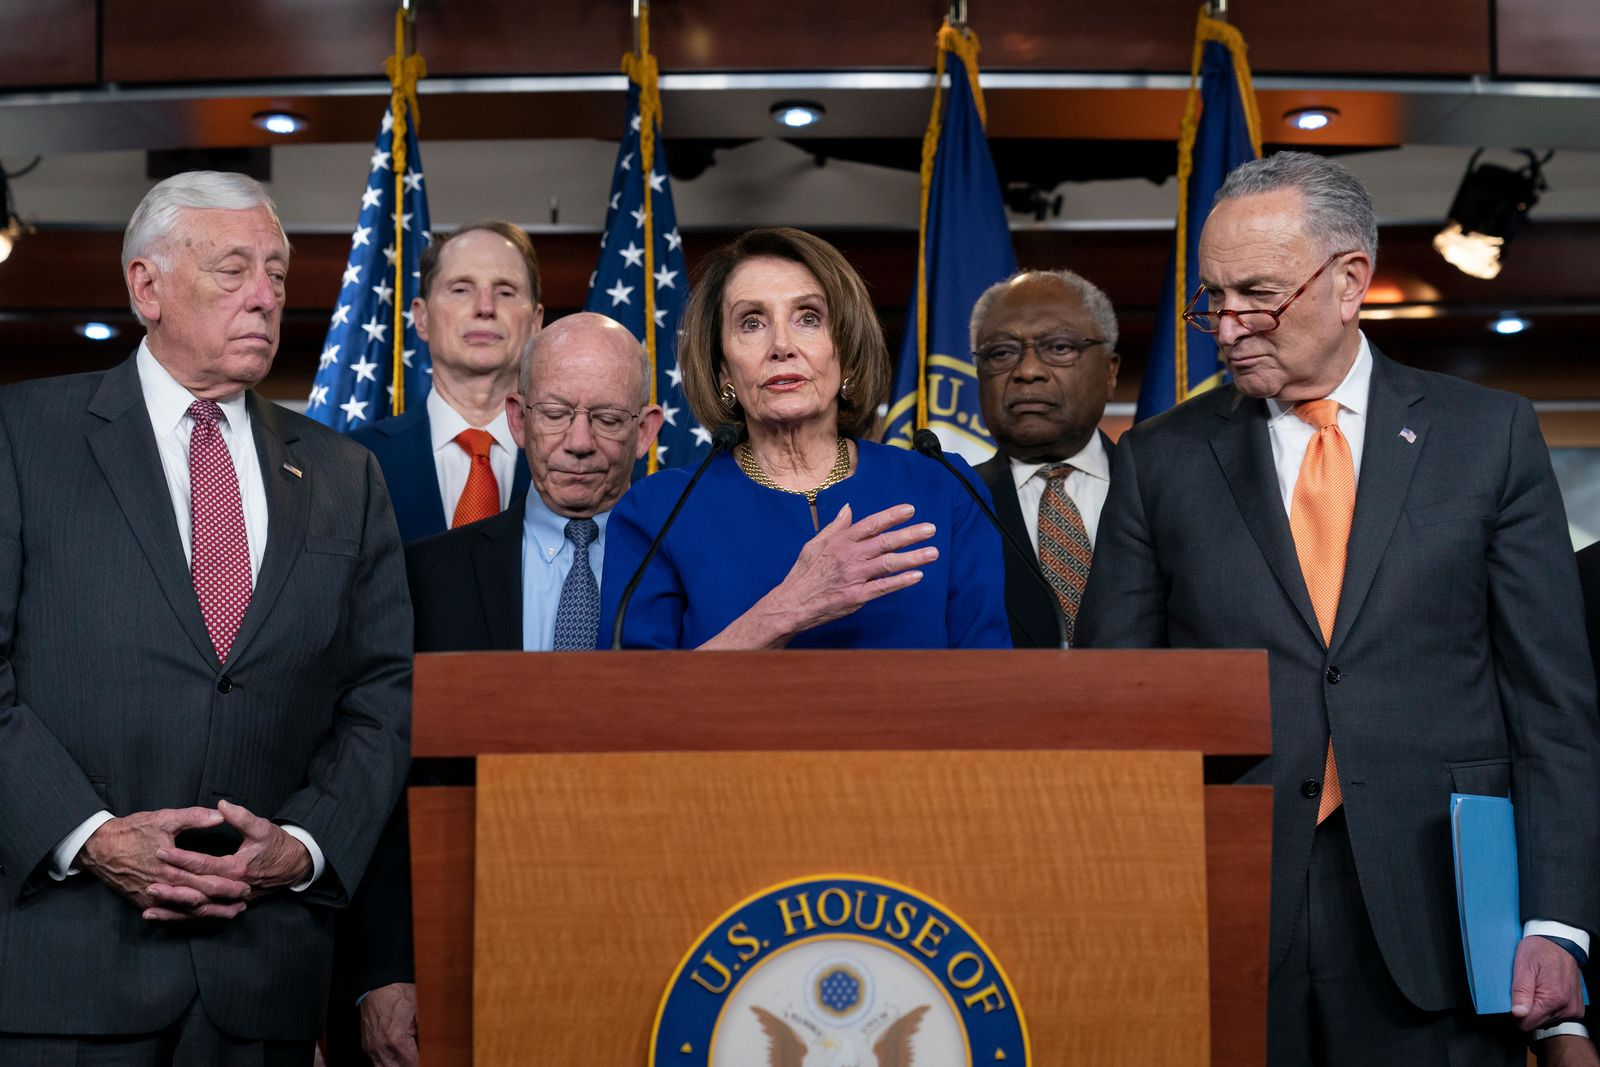 Speaker of the House Nancy Pelosi, D-Calif., center, Senate Minority Leader Chuck Schumer, D-N.Y., right, and other congressional leaders, react to a failed meeting with President Donald Trump at the White House on infrastructure, at the Capitol in Washington, Wednesday, May 22, 2019. (AP Photo/J. Scott Applewhite)